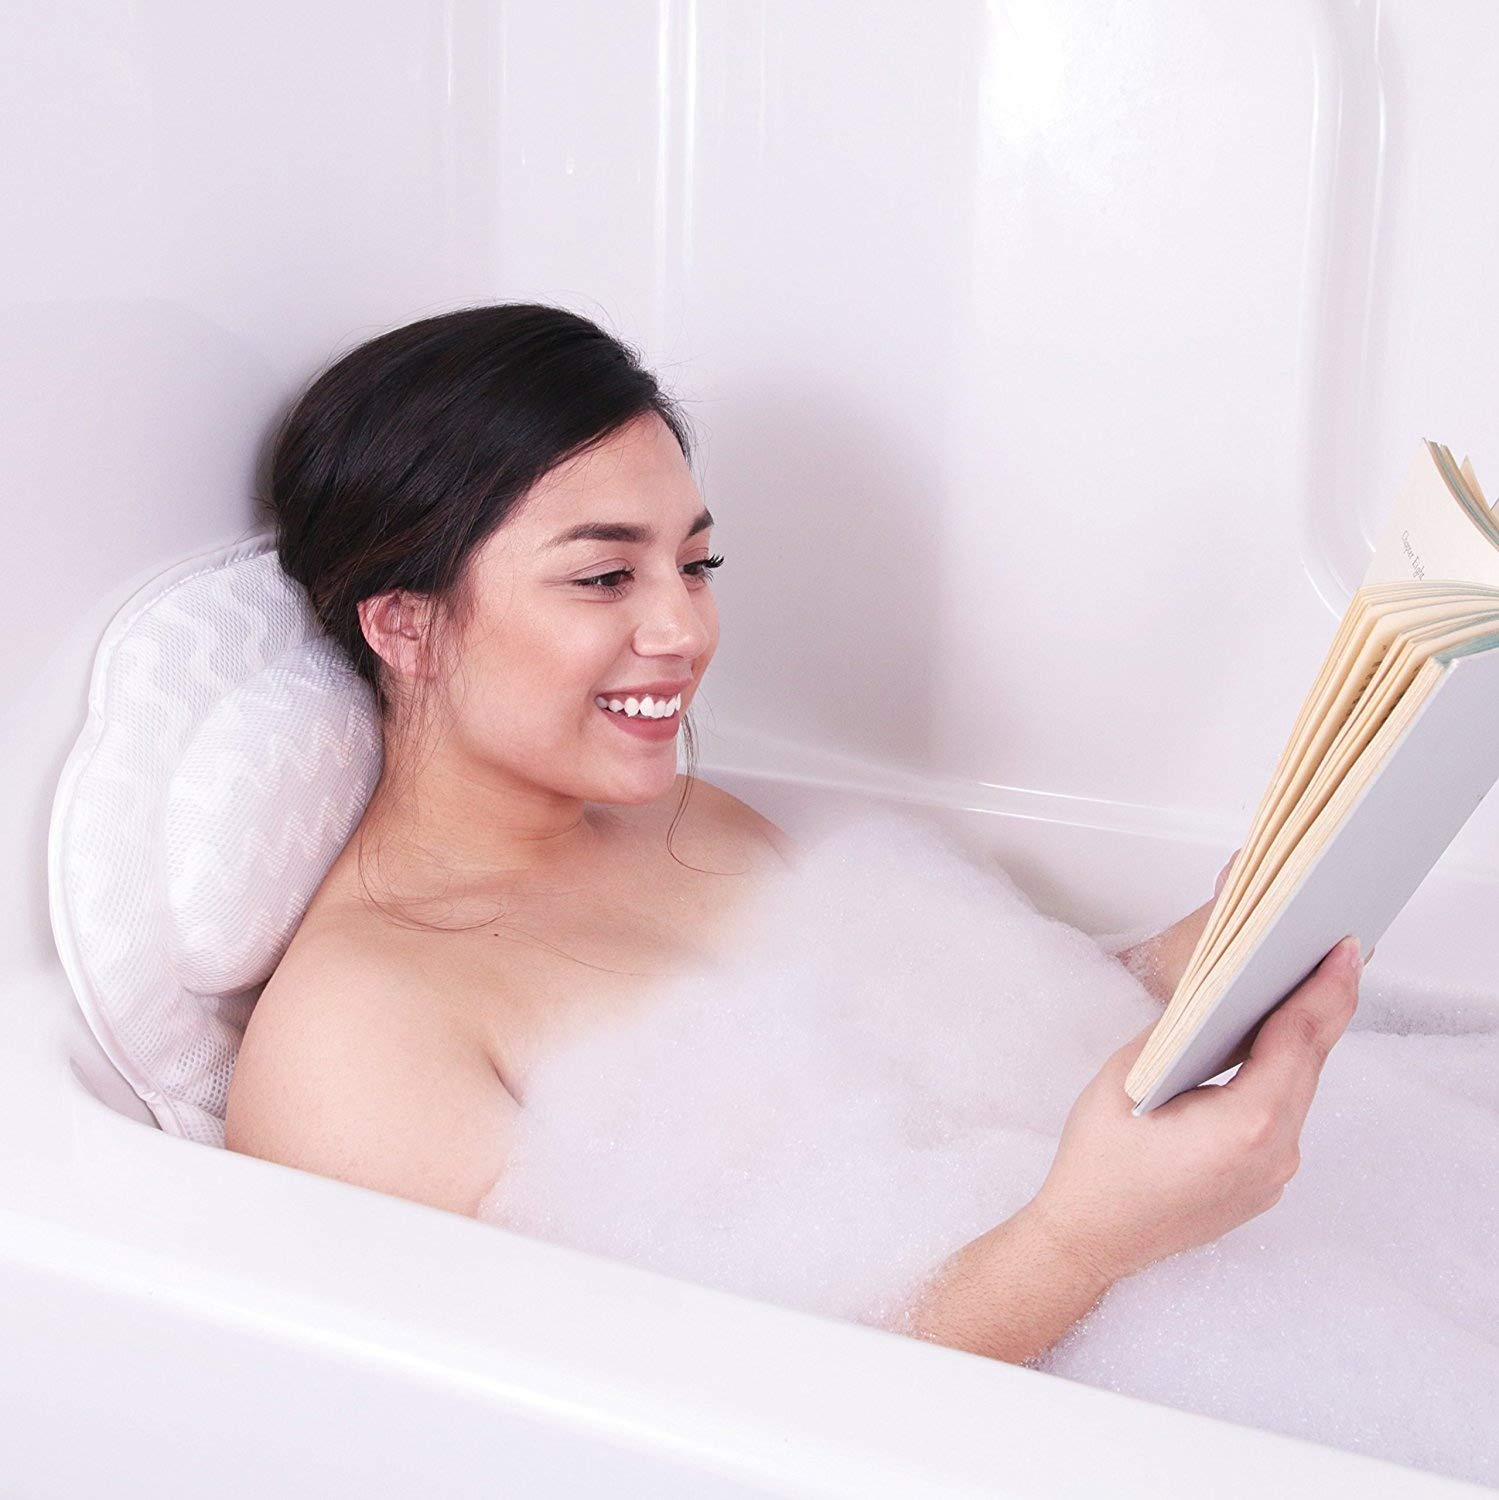 Pure Indulgence Luxury Bath Pillow : Luxurious Bath Pillow For All : Ergonomic Bathtub Cushion for Neck, Back, Head & Shoulders :Designed QuiltedAir Mesh for Breathable Comfort : Includes Carrying Bag Zen Heaven Spa Inc.